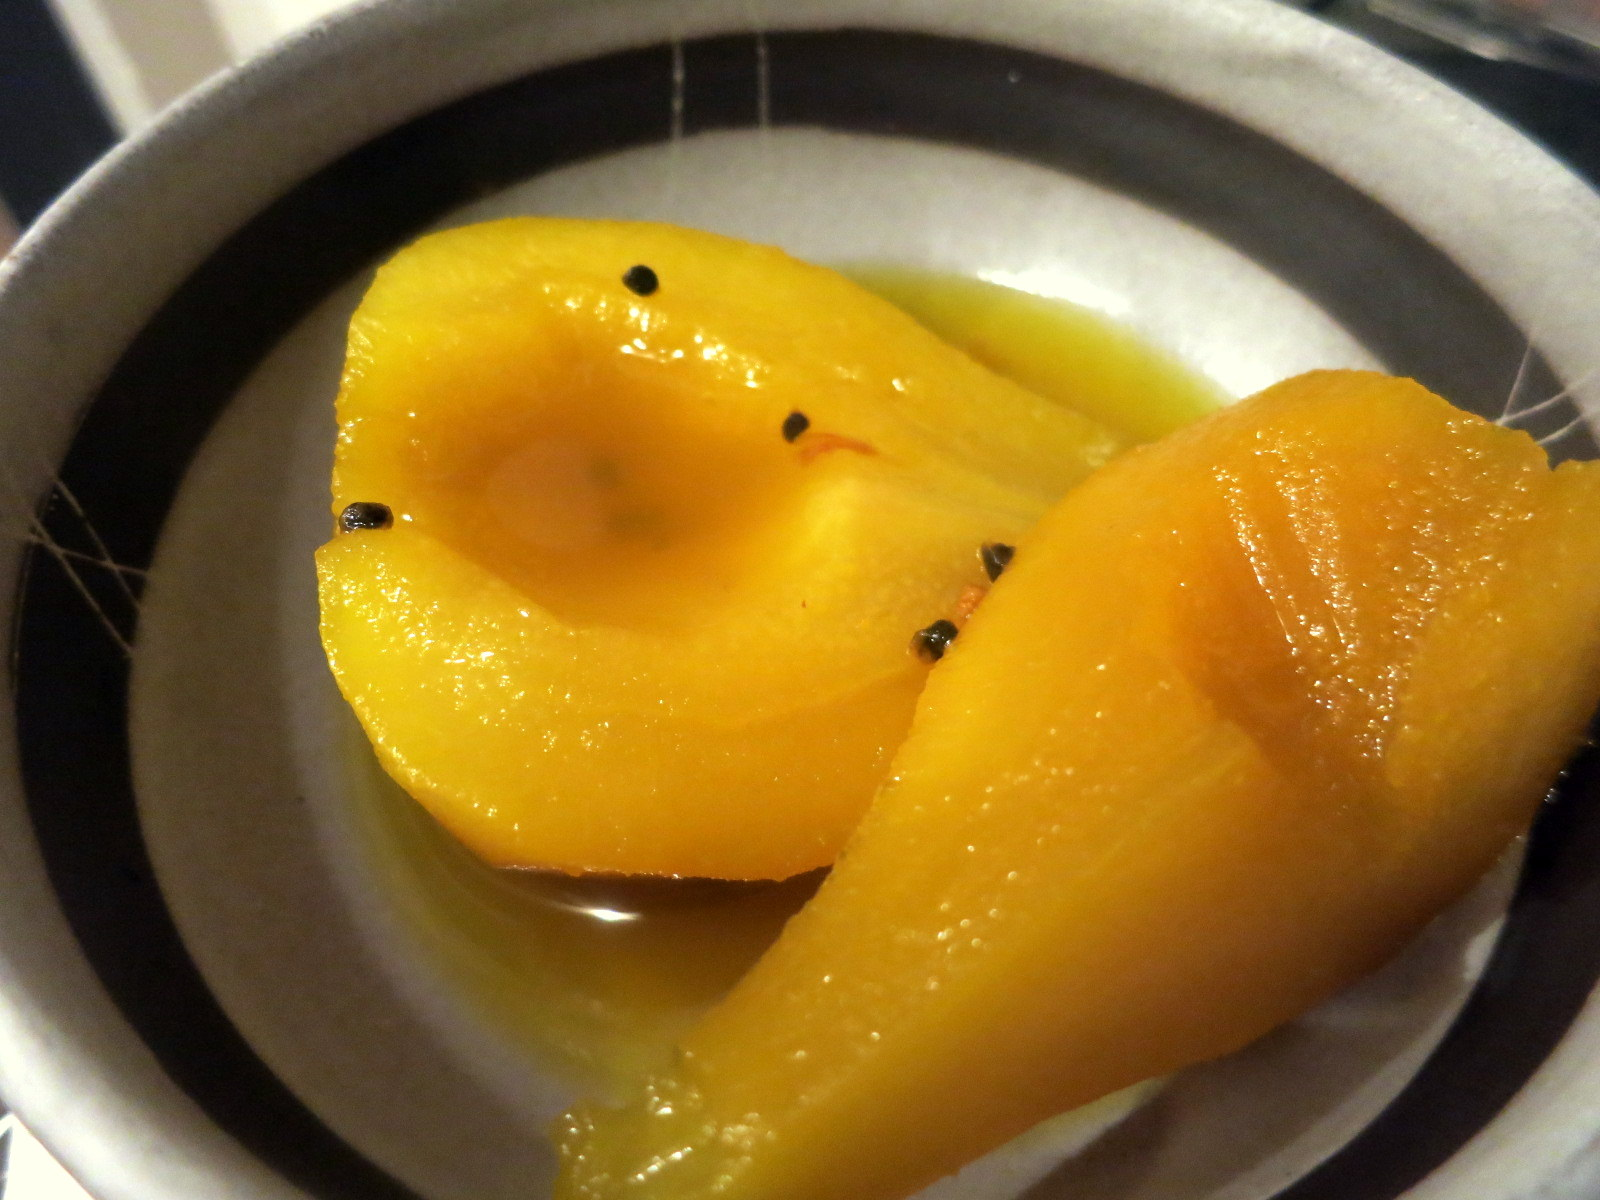 Pears poached in white wine with saffron and cardamom